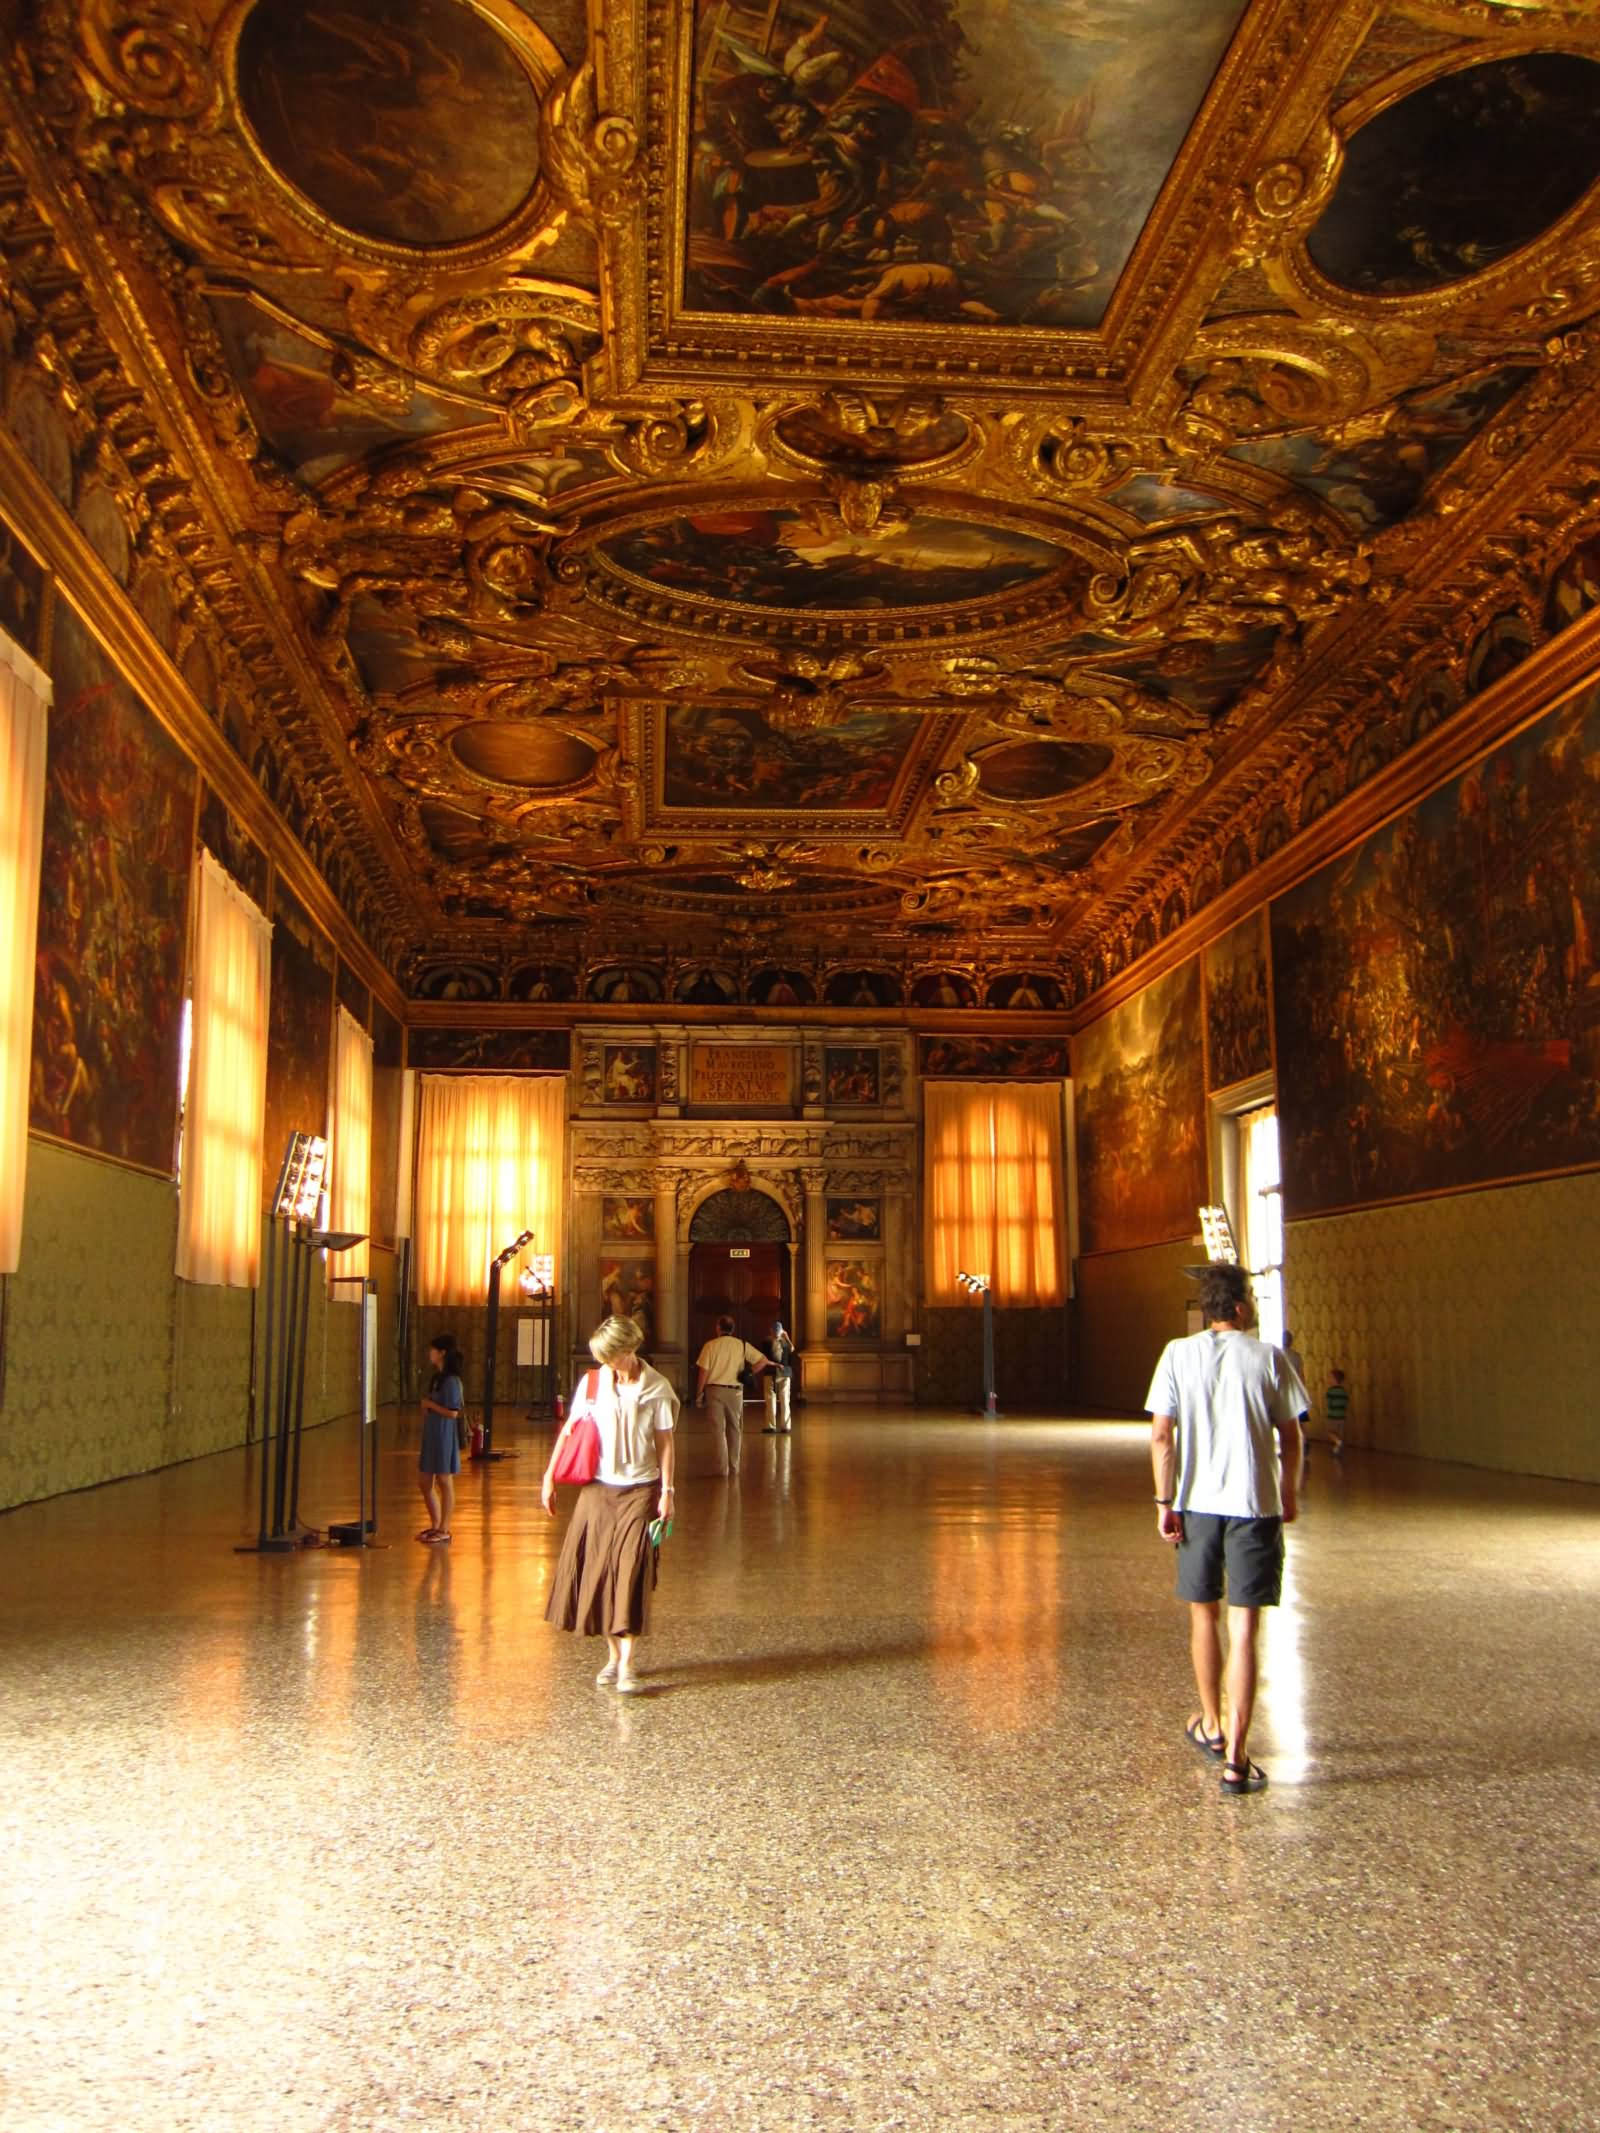 Amazing Interior Design: 25 Most Amazing Interior View Of The Doge's Palace, Venice